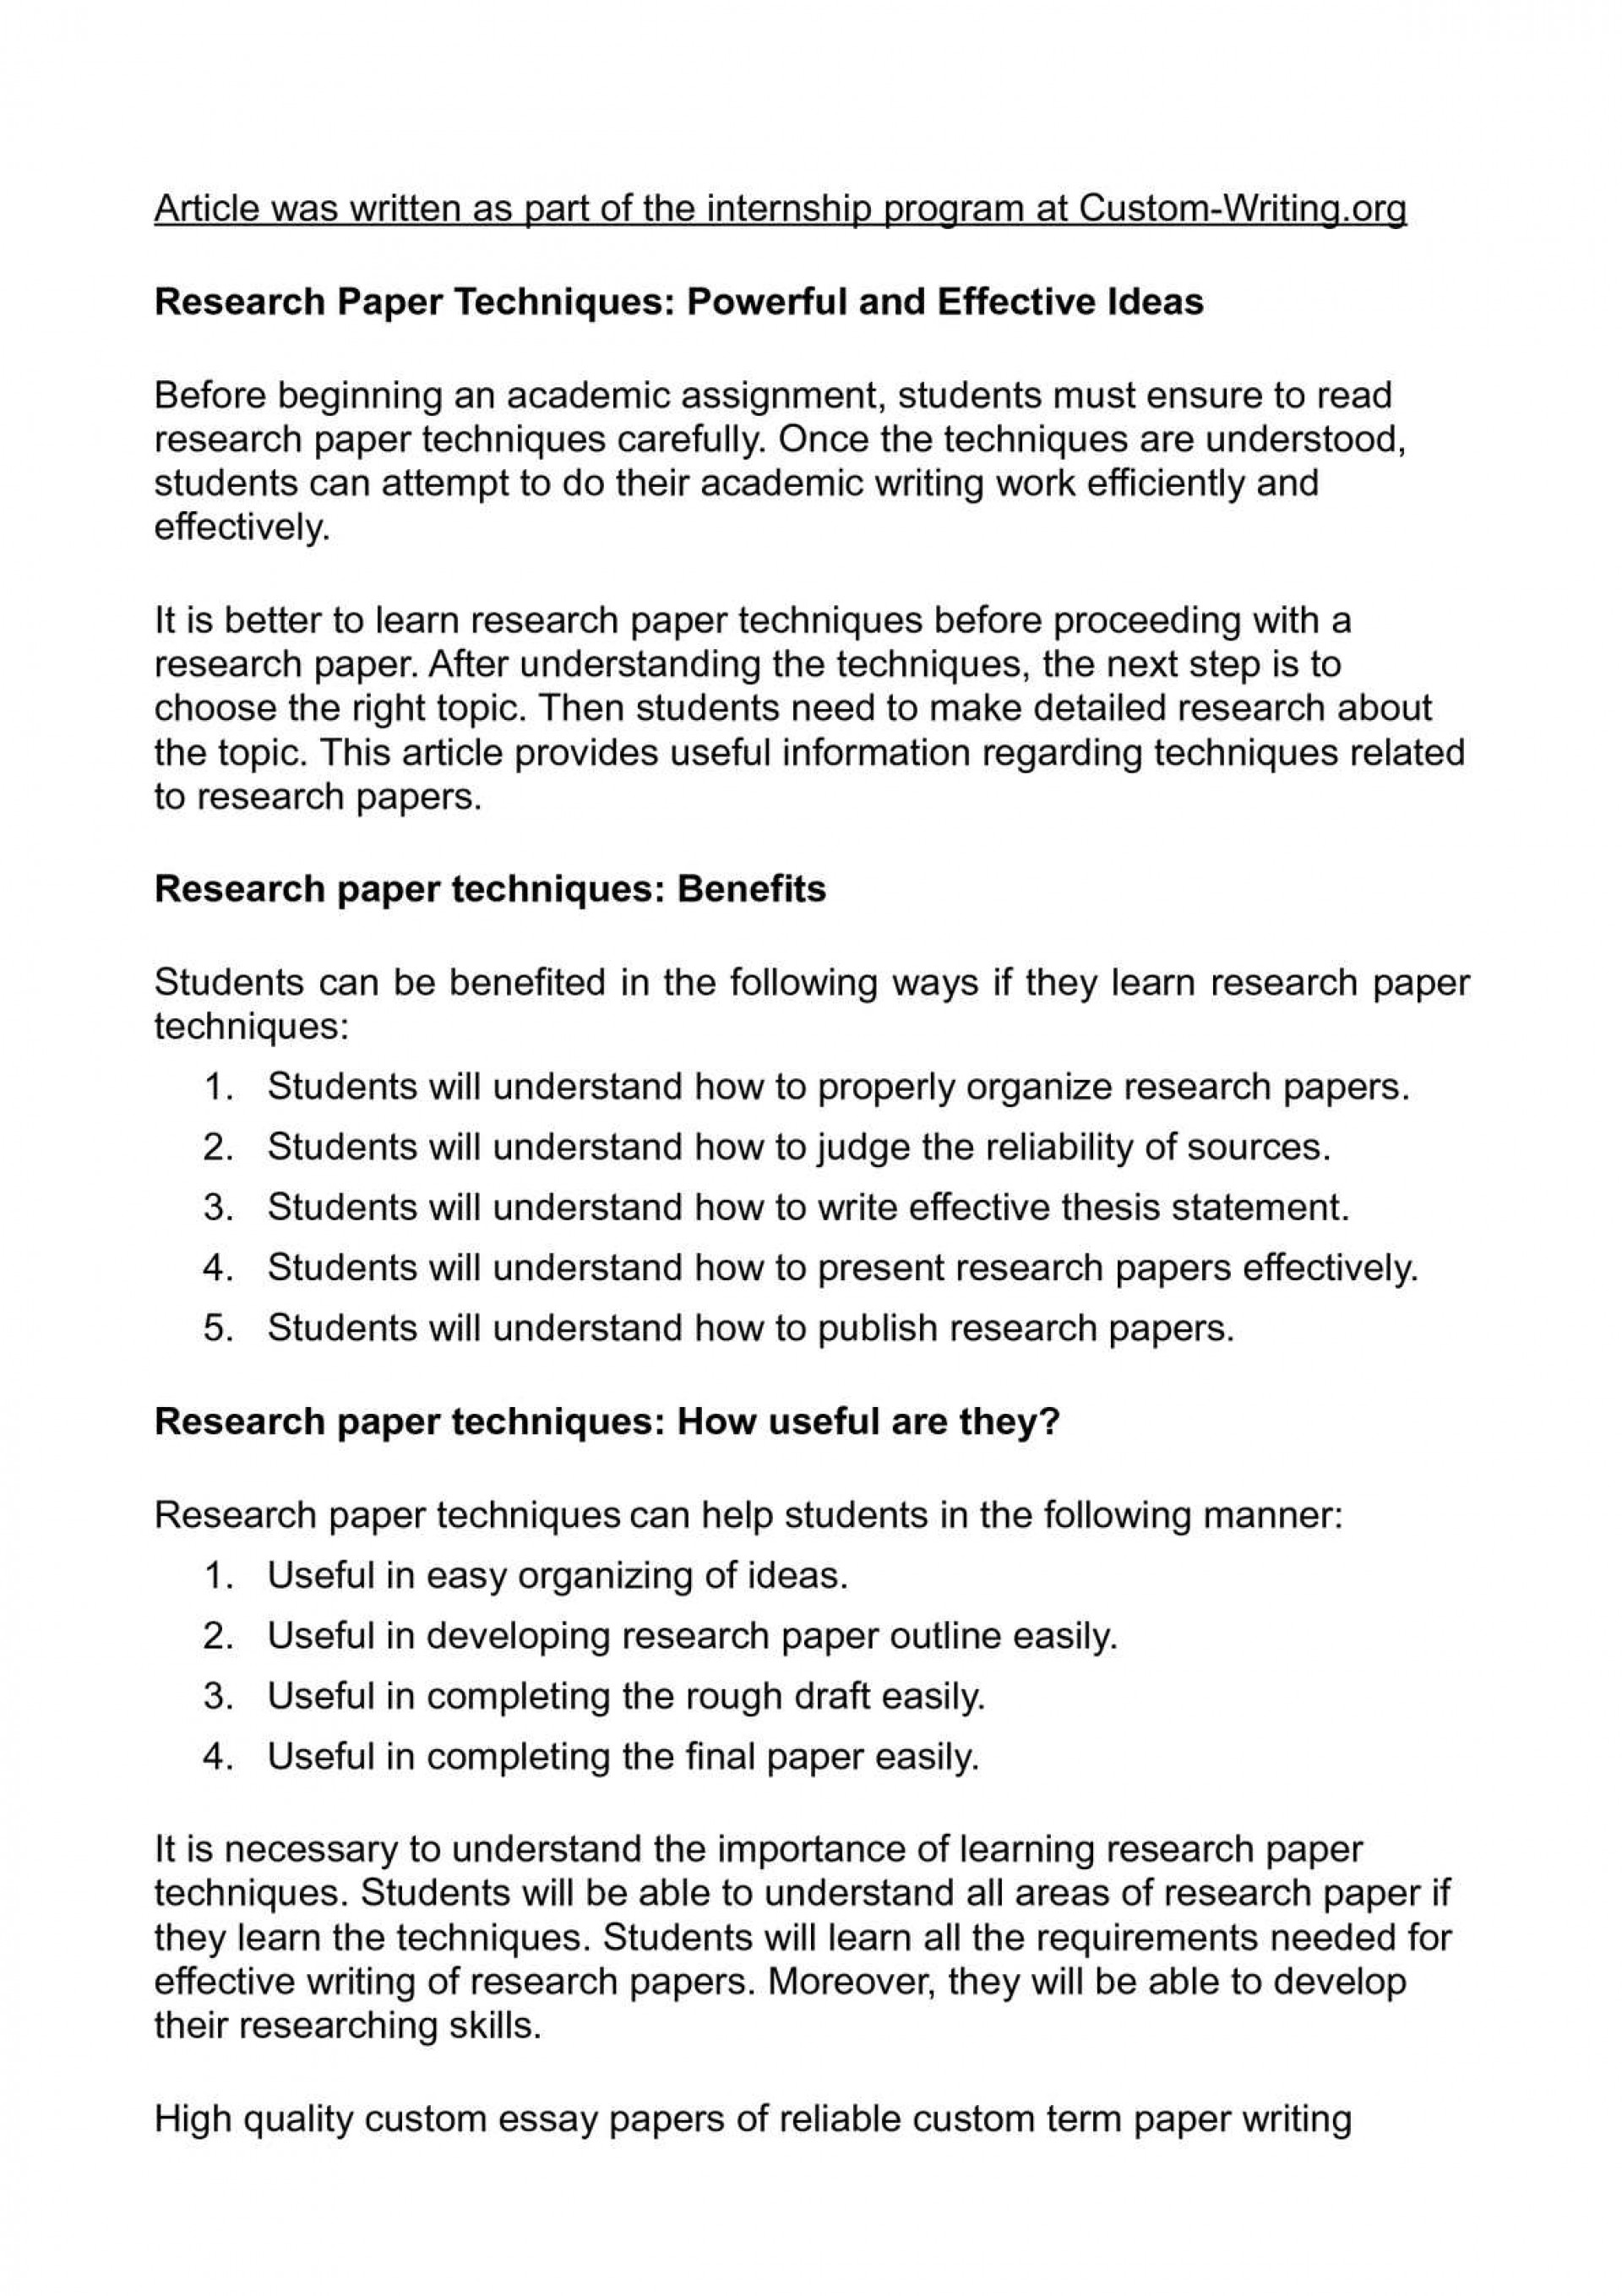 006 P1 Research Paper Organizing Unforgettable A Outline Information In An For 1920